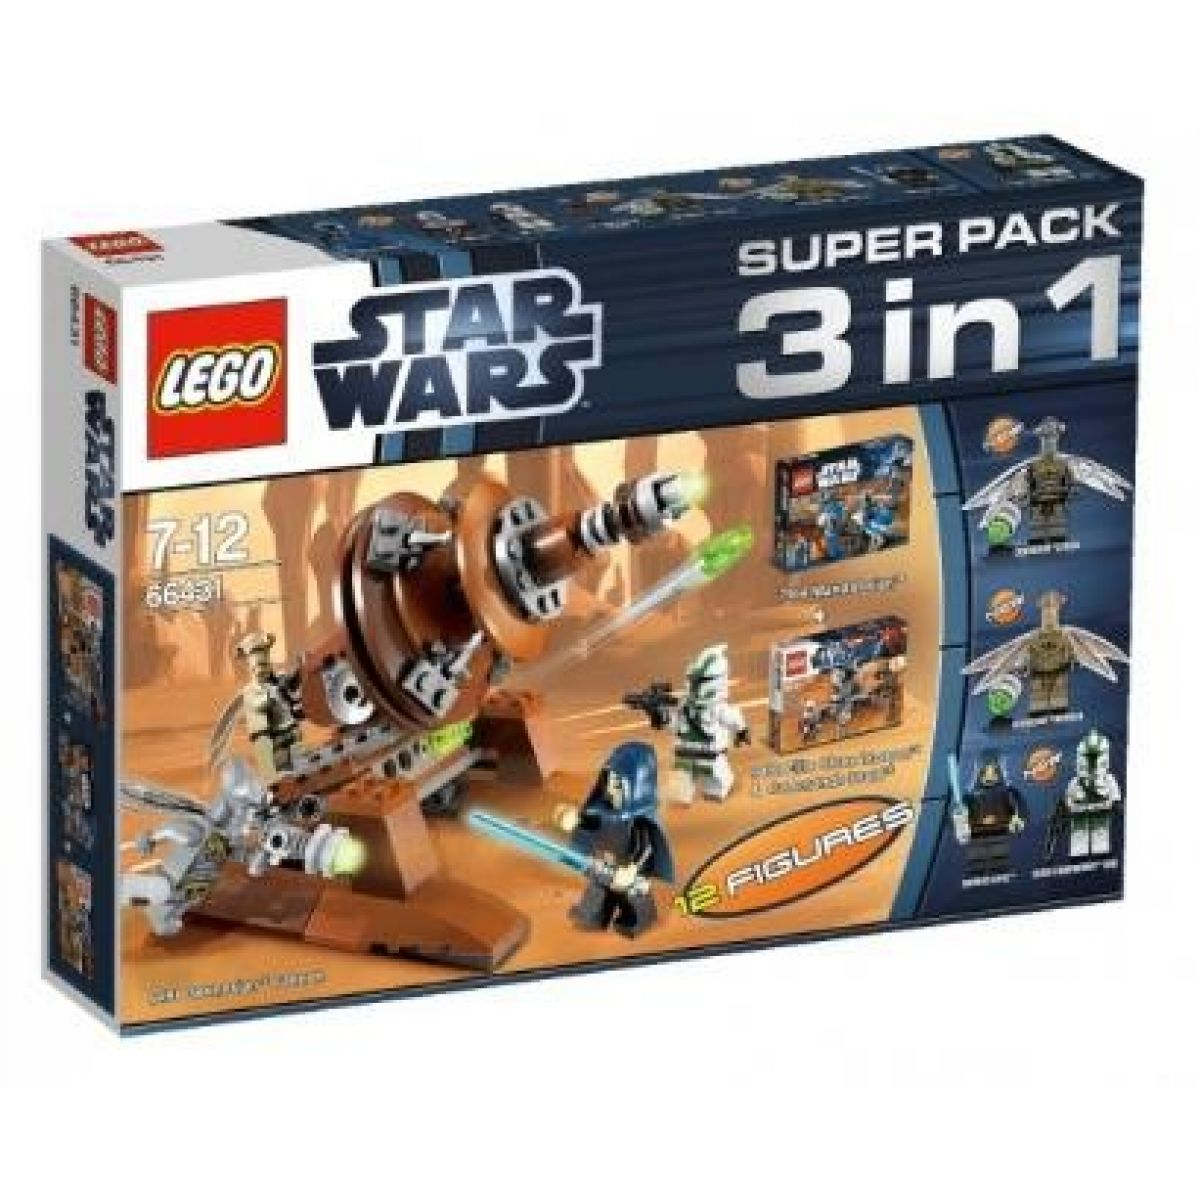 LEGO Star Wars 66431 Super Pack 3v1